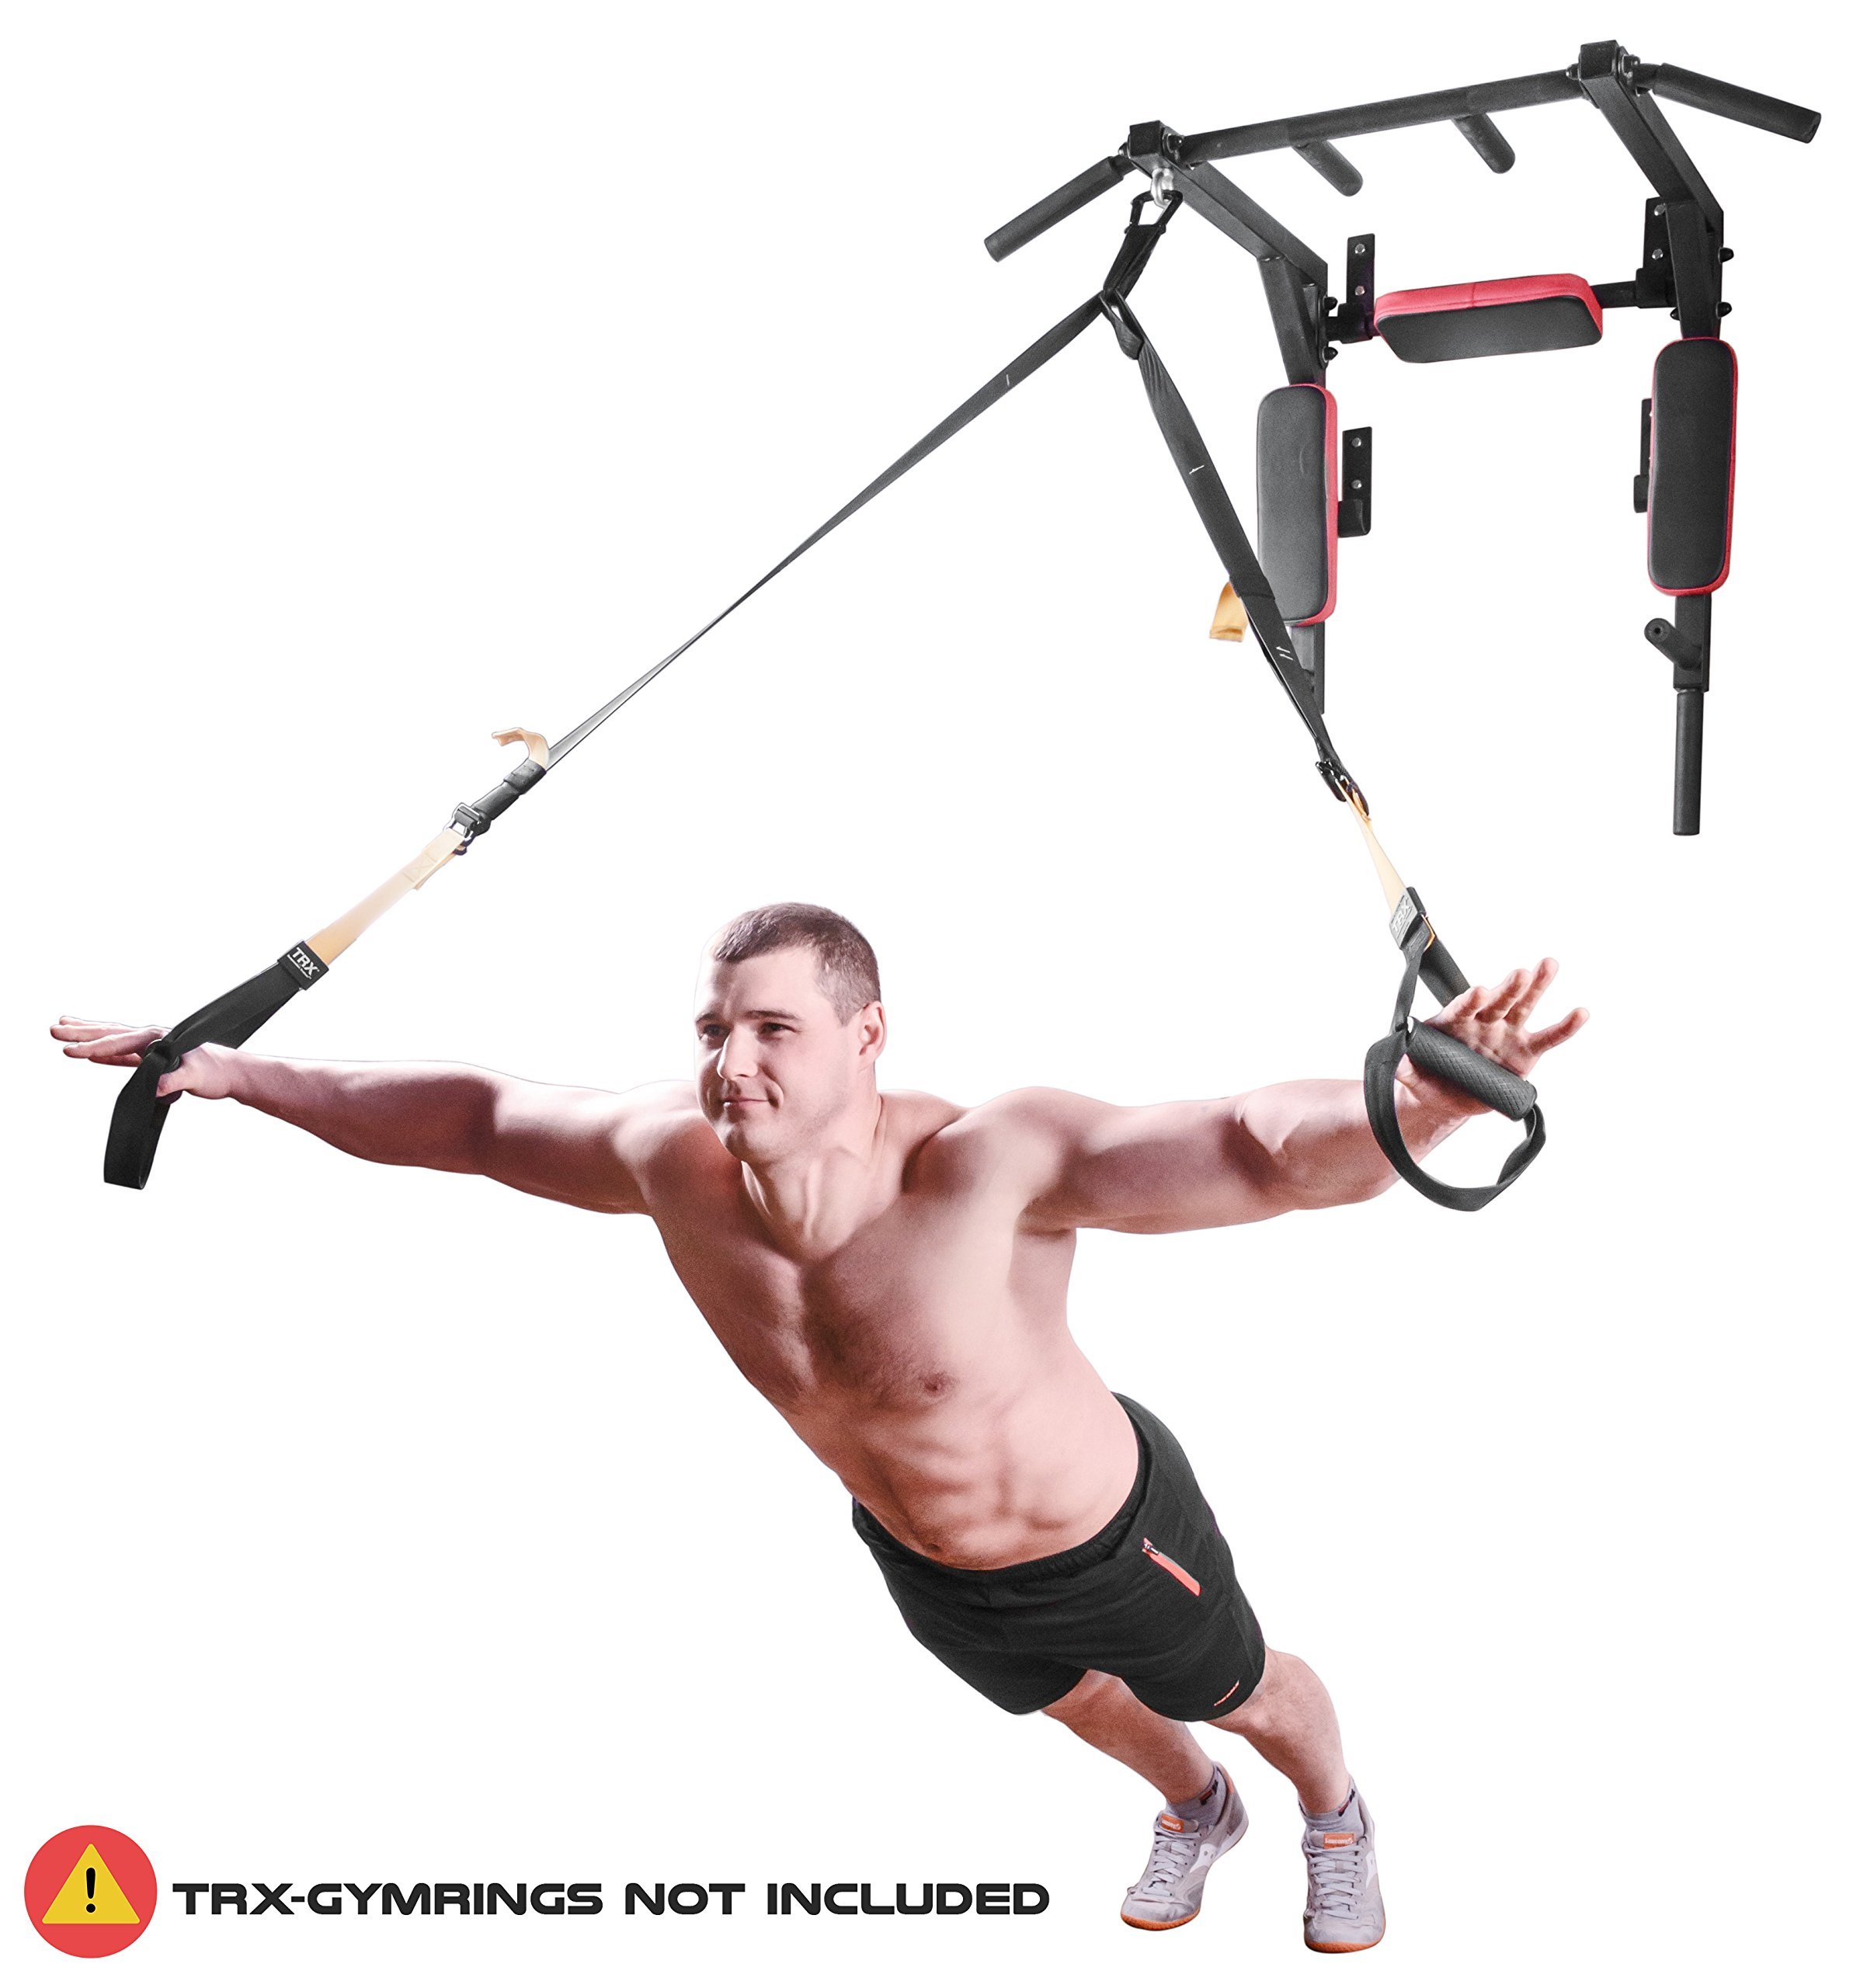 Wall Mounted Pull Up Bar - Pullup Bar Wall Mount - Chin Up Bar - Pull Up Bars and Dip Bar - Pullup and Dip Bar - Dip Station Pull Bar - Pullup Bars Outdoor and Home Room or Garage Gym Multi Grip - Pul by BAR2FIT QUALITY SPORTS EQUIPMENT (Image #7)